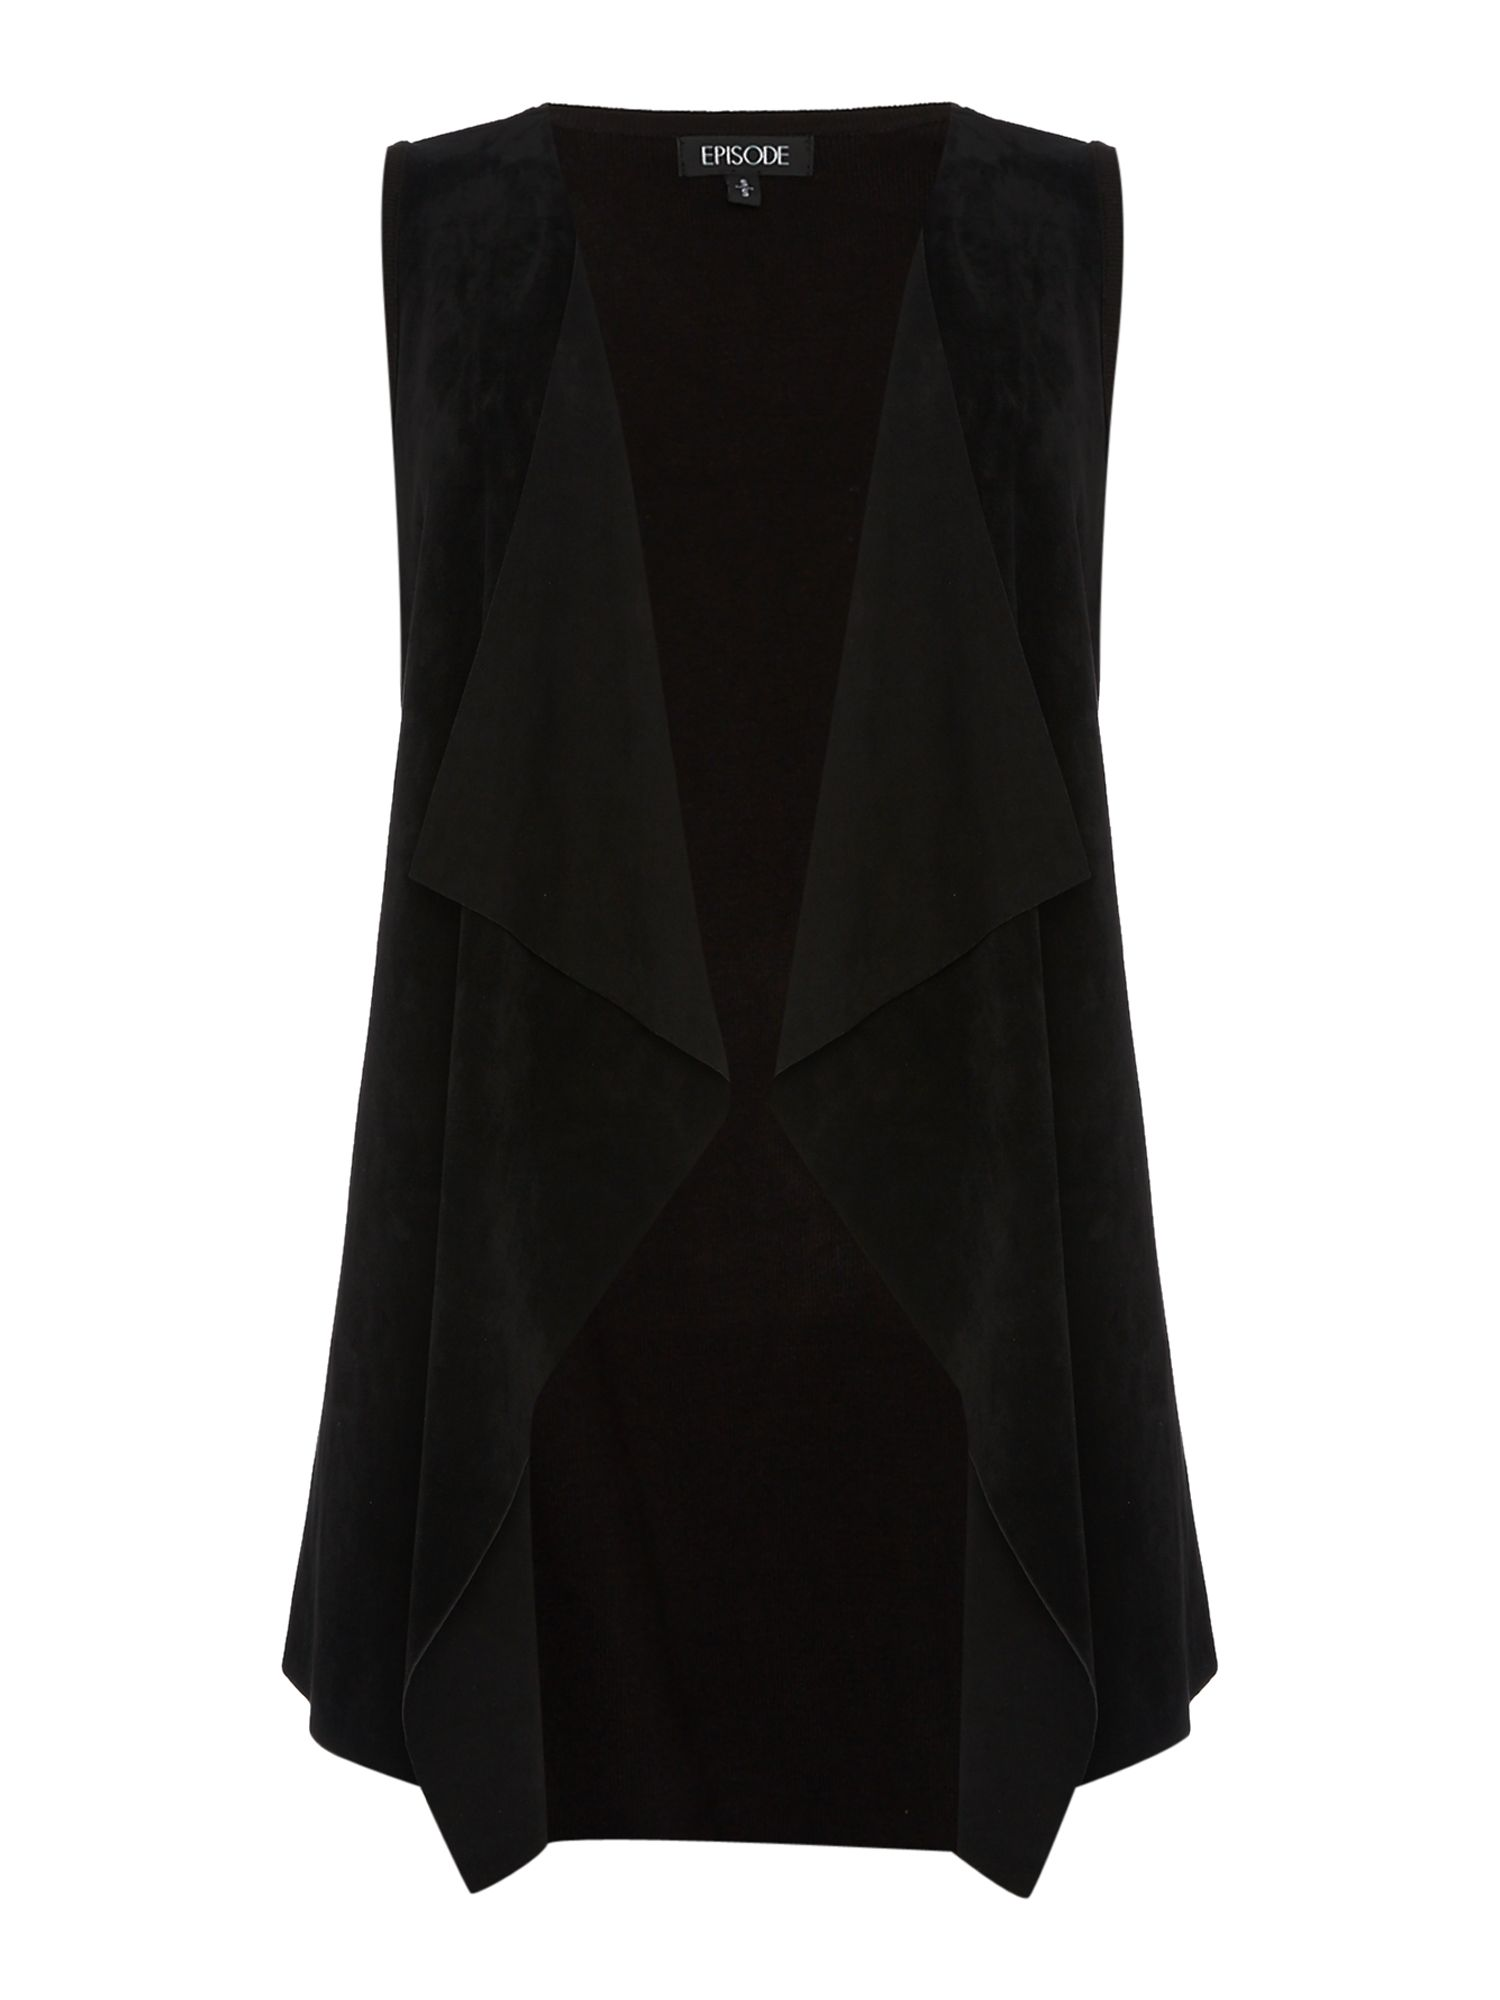 Episode Episode Sleeveless Suede Gilet, Black